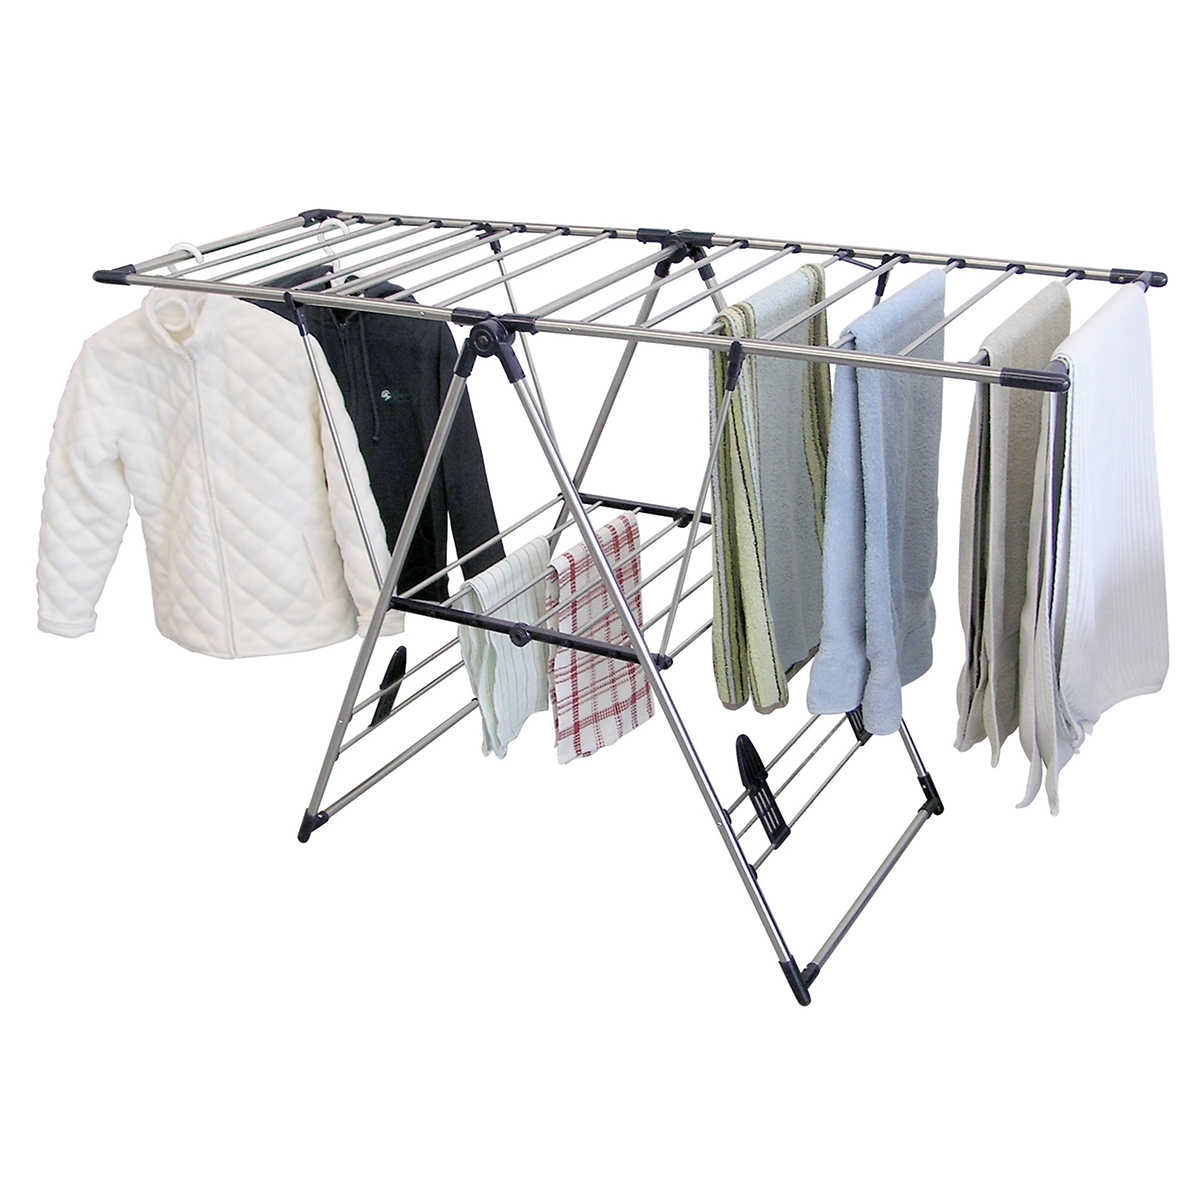 Greenway Home Products X Large Stainless Steel Fold Away Laundry Rack